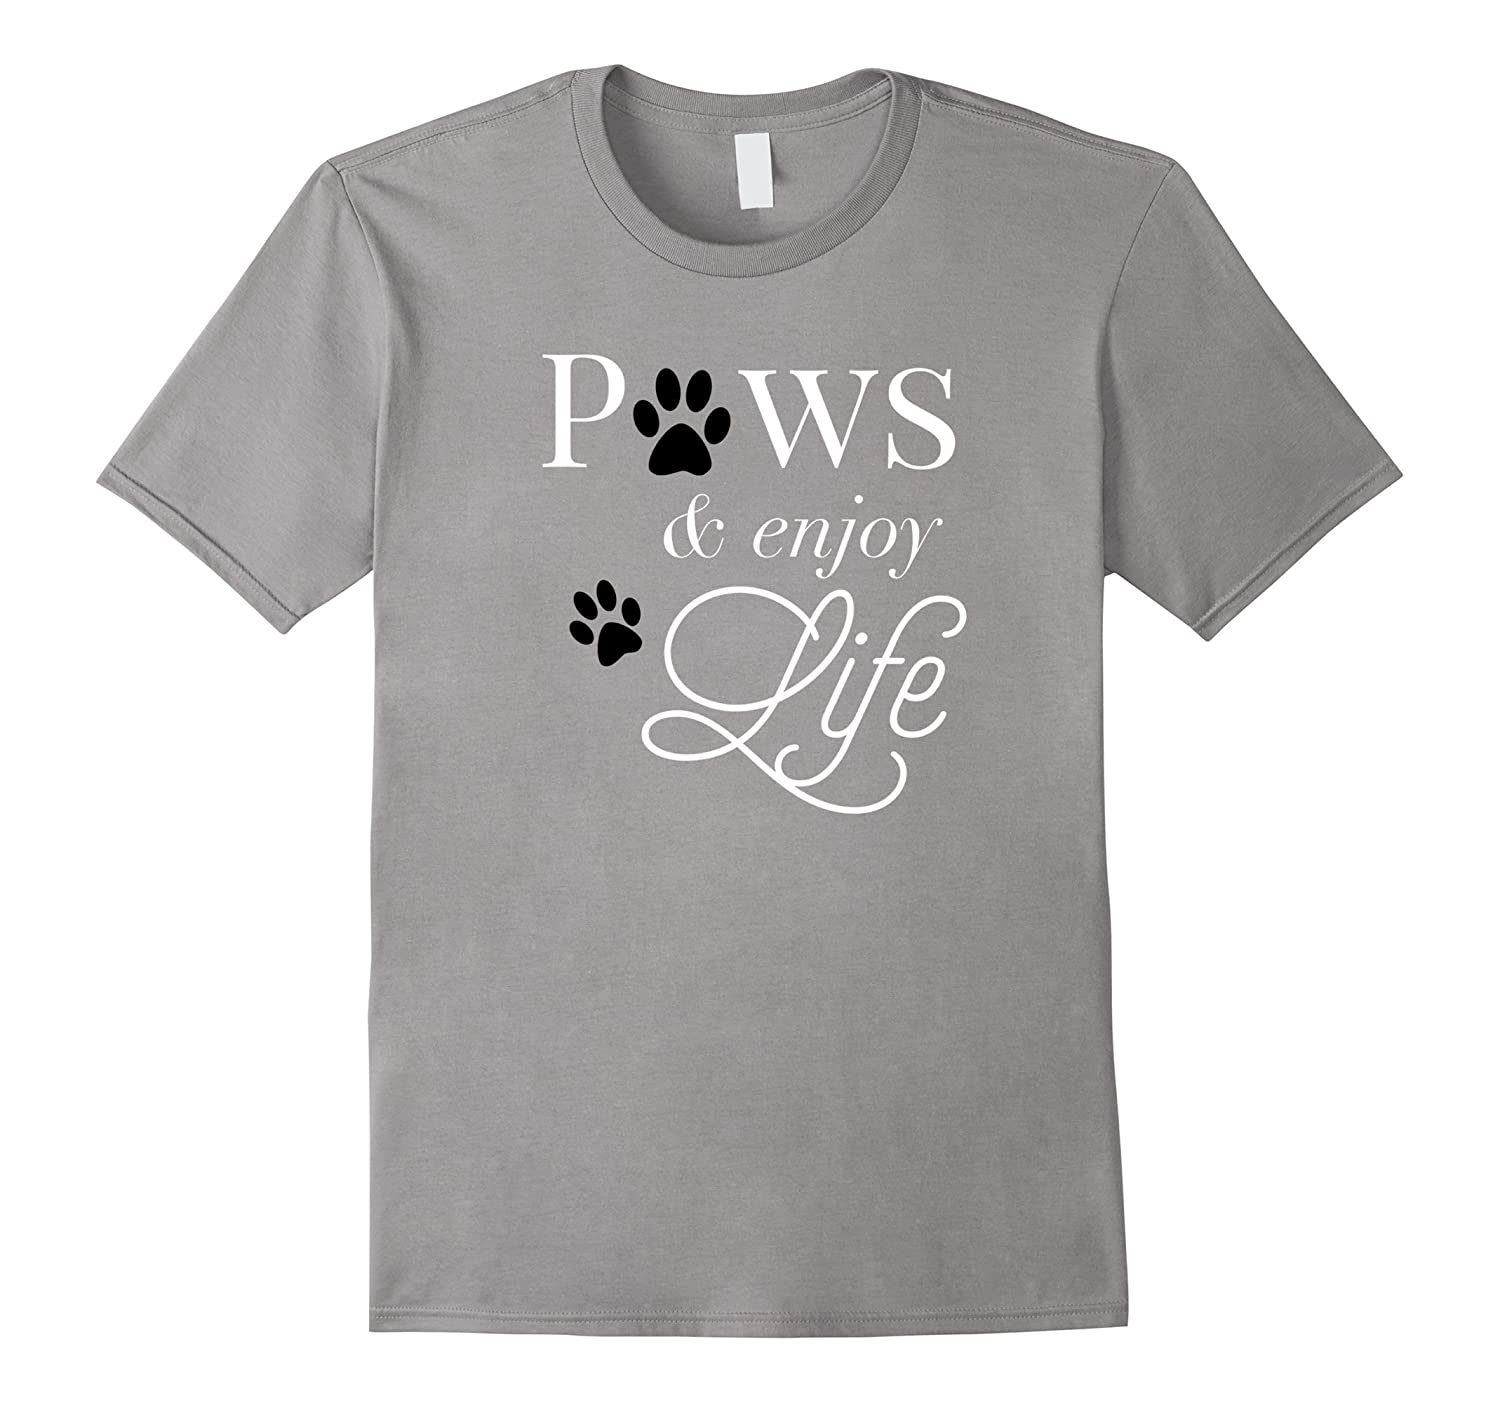 Paws & Enjoy Life T-Shirt Gift for Dog Lovers Moms & Dads-BN